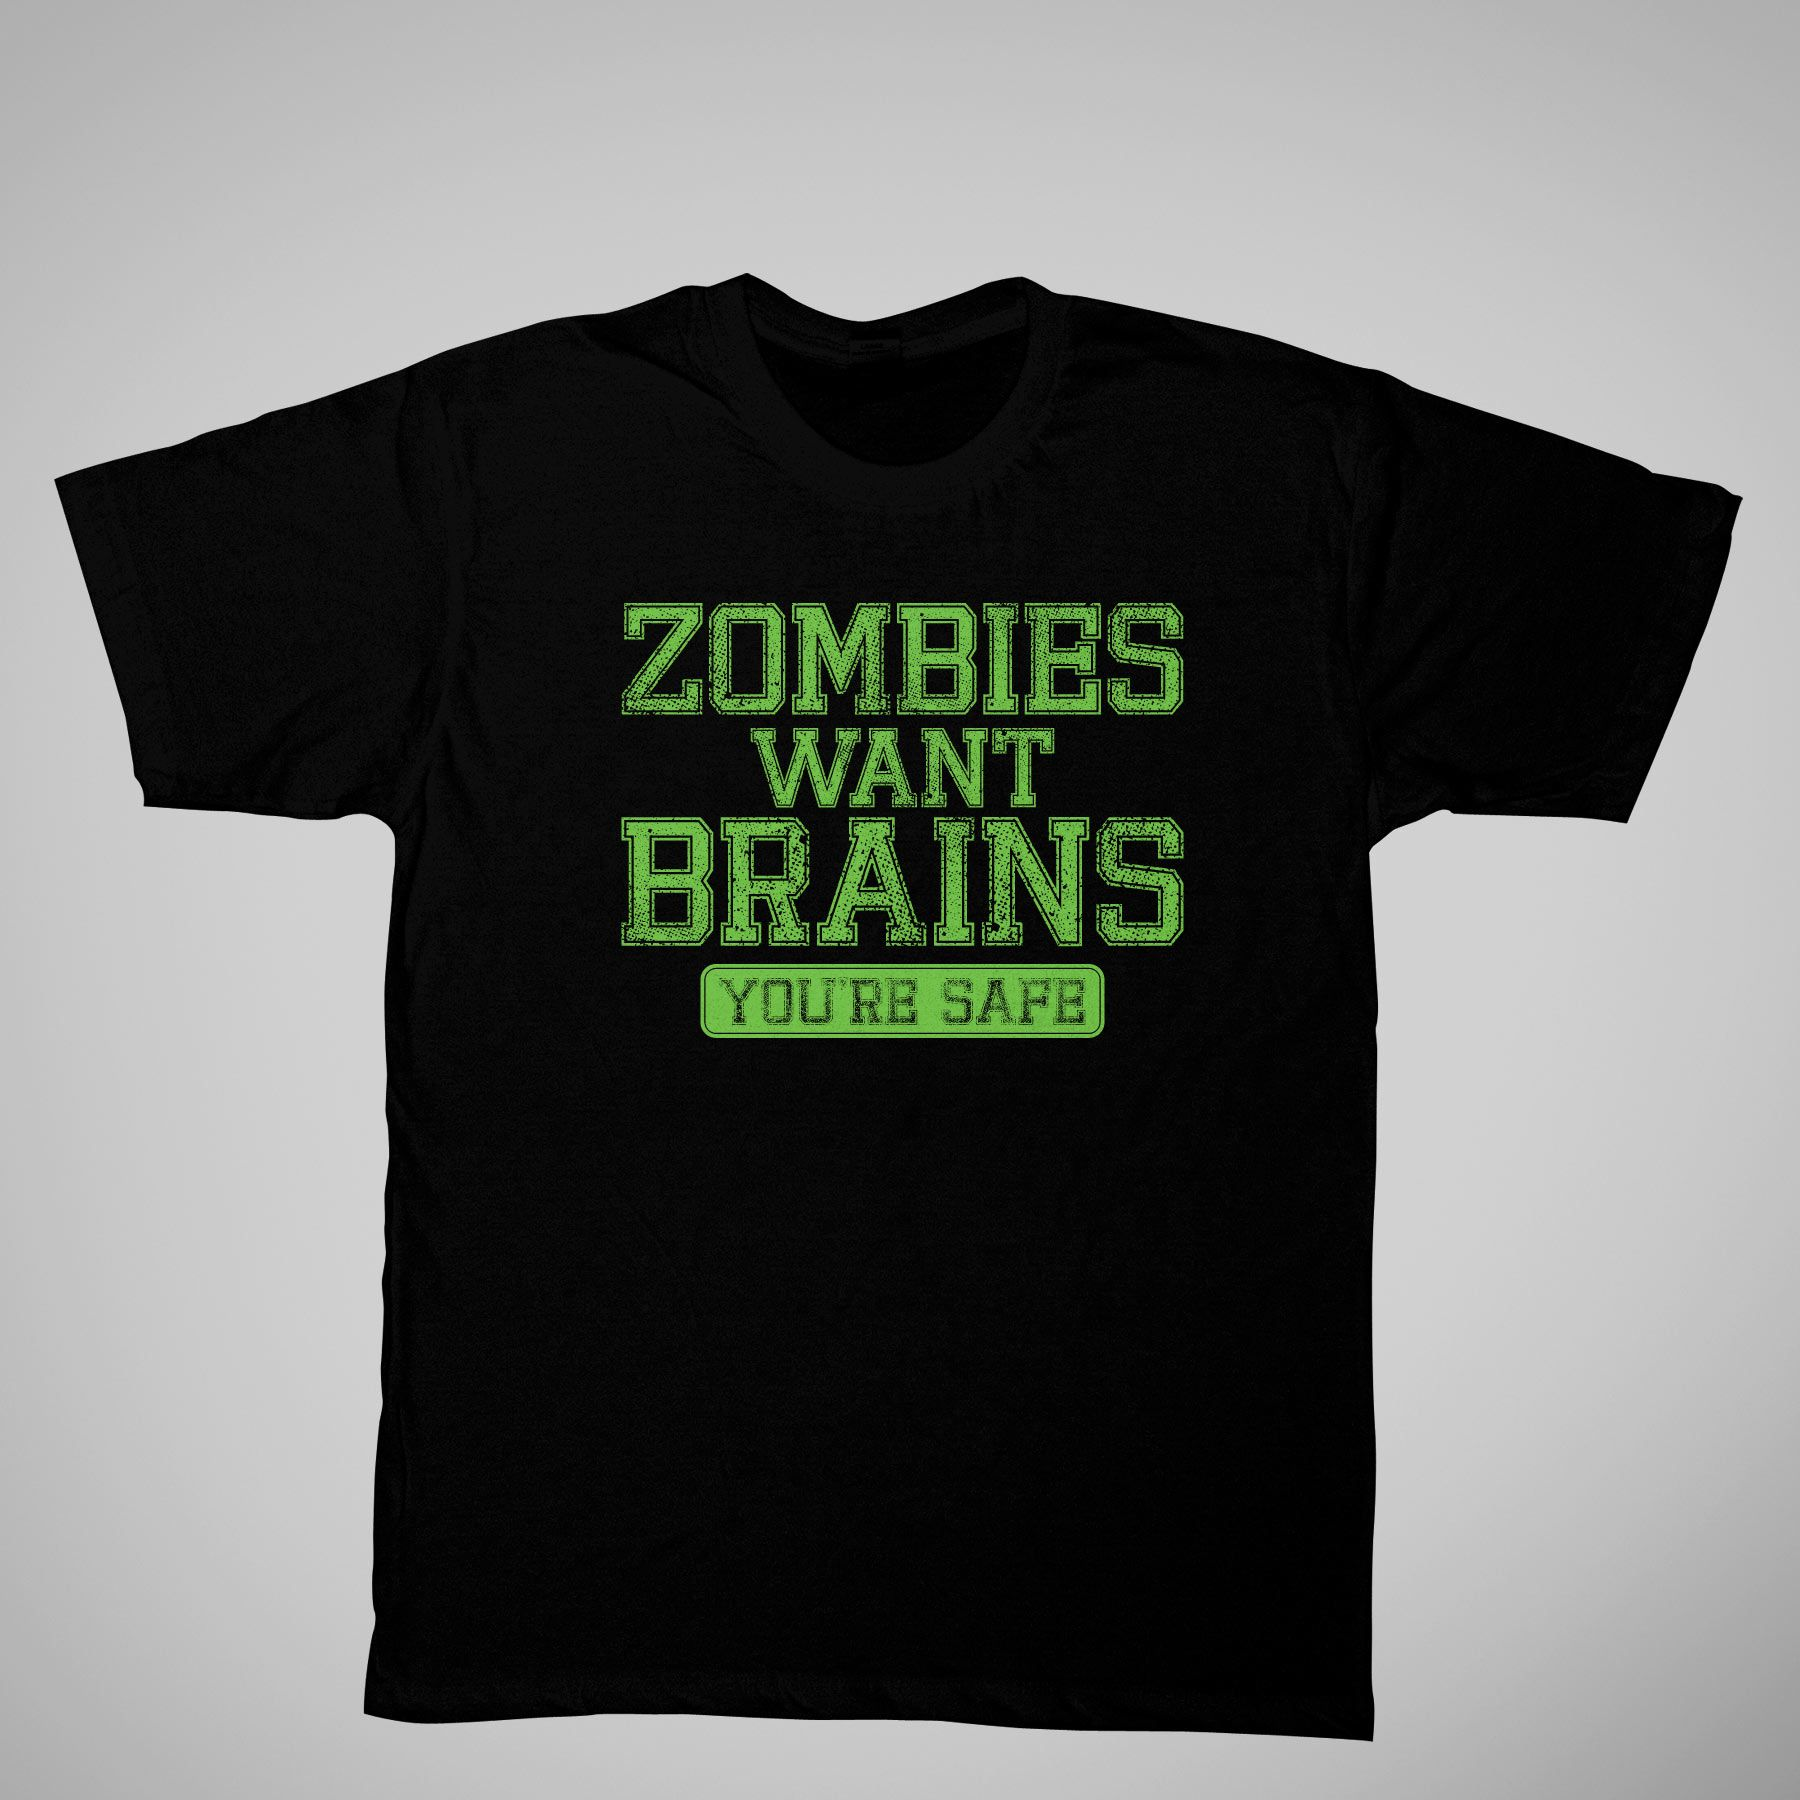 Men's Graphic Tee 'Zombies' Short Sleeve at Kmart.com